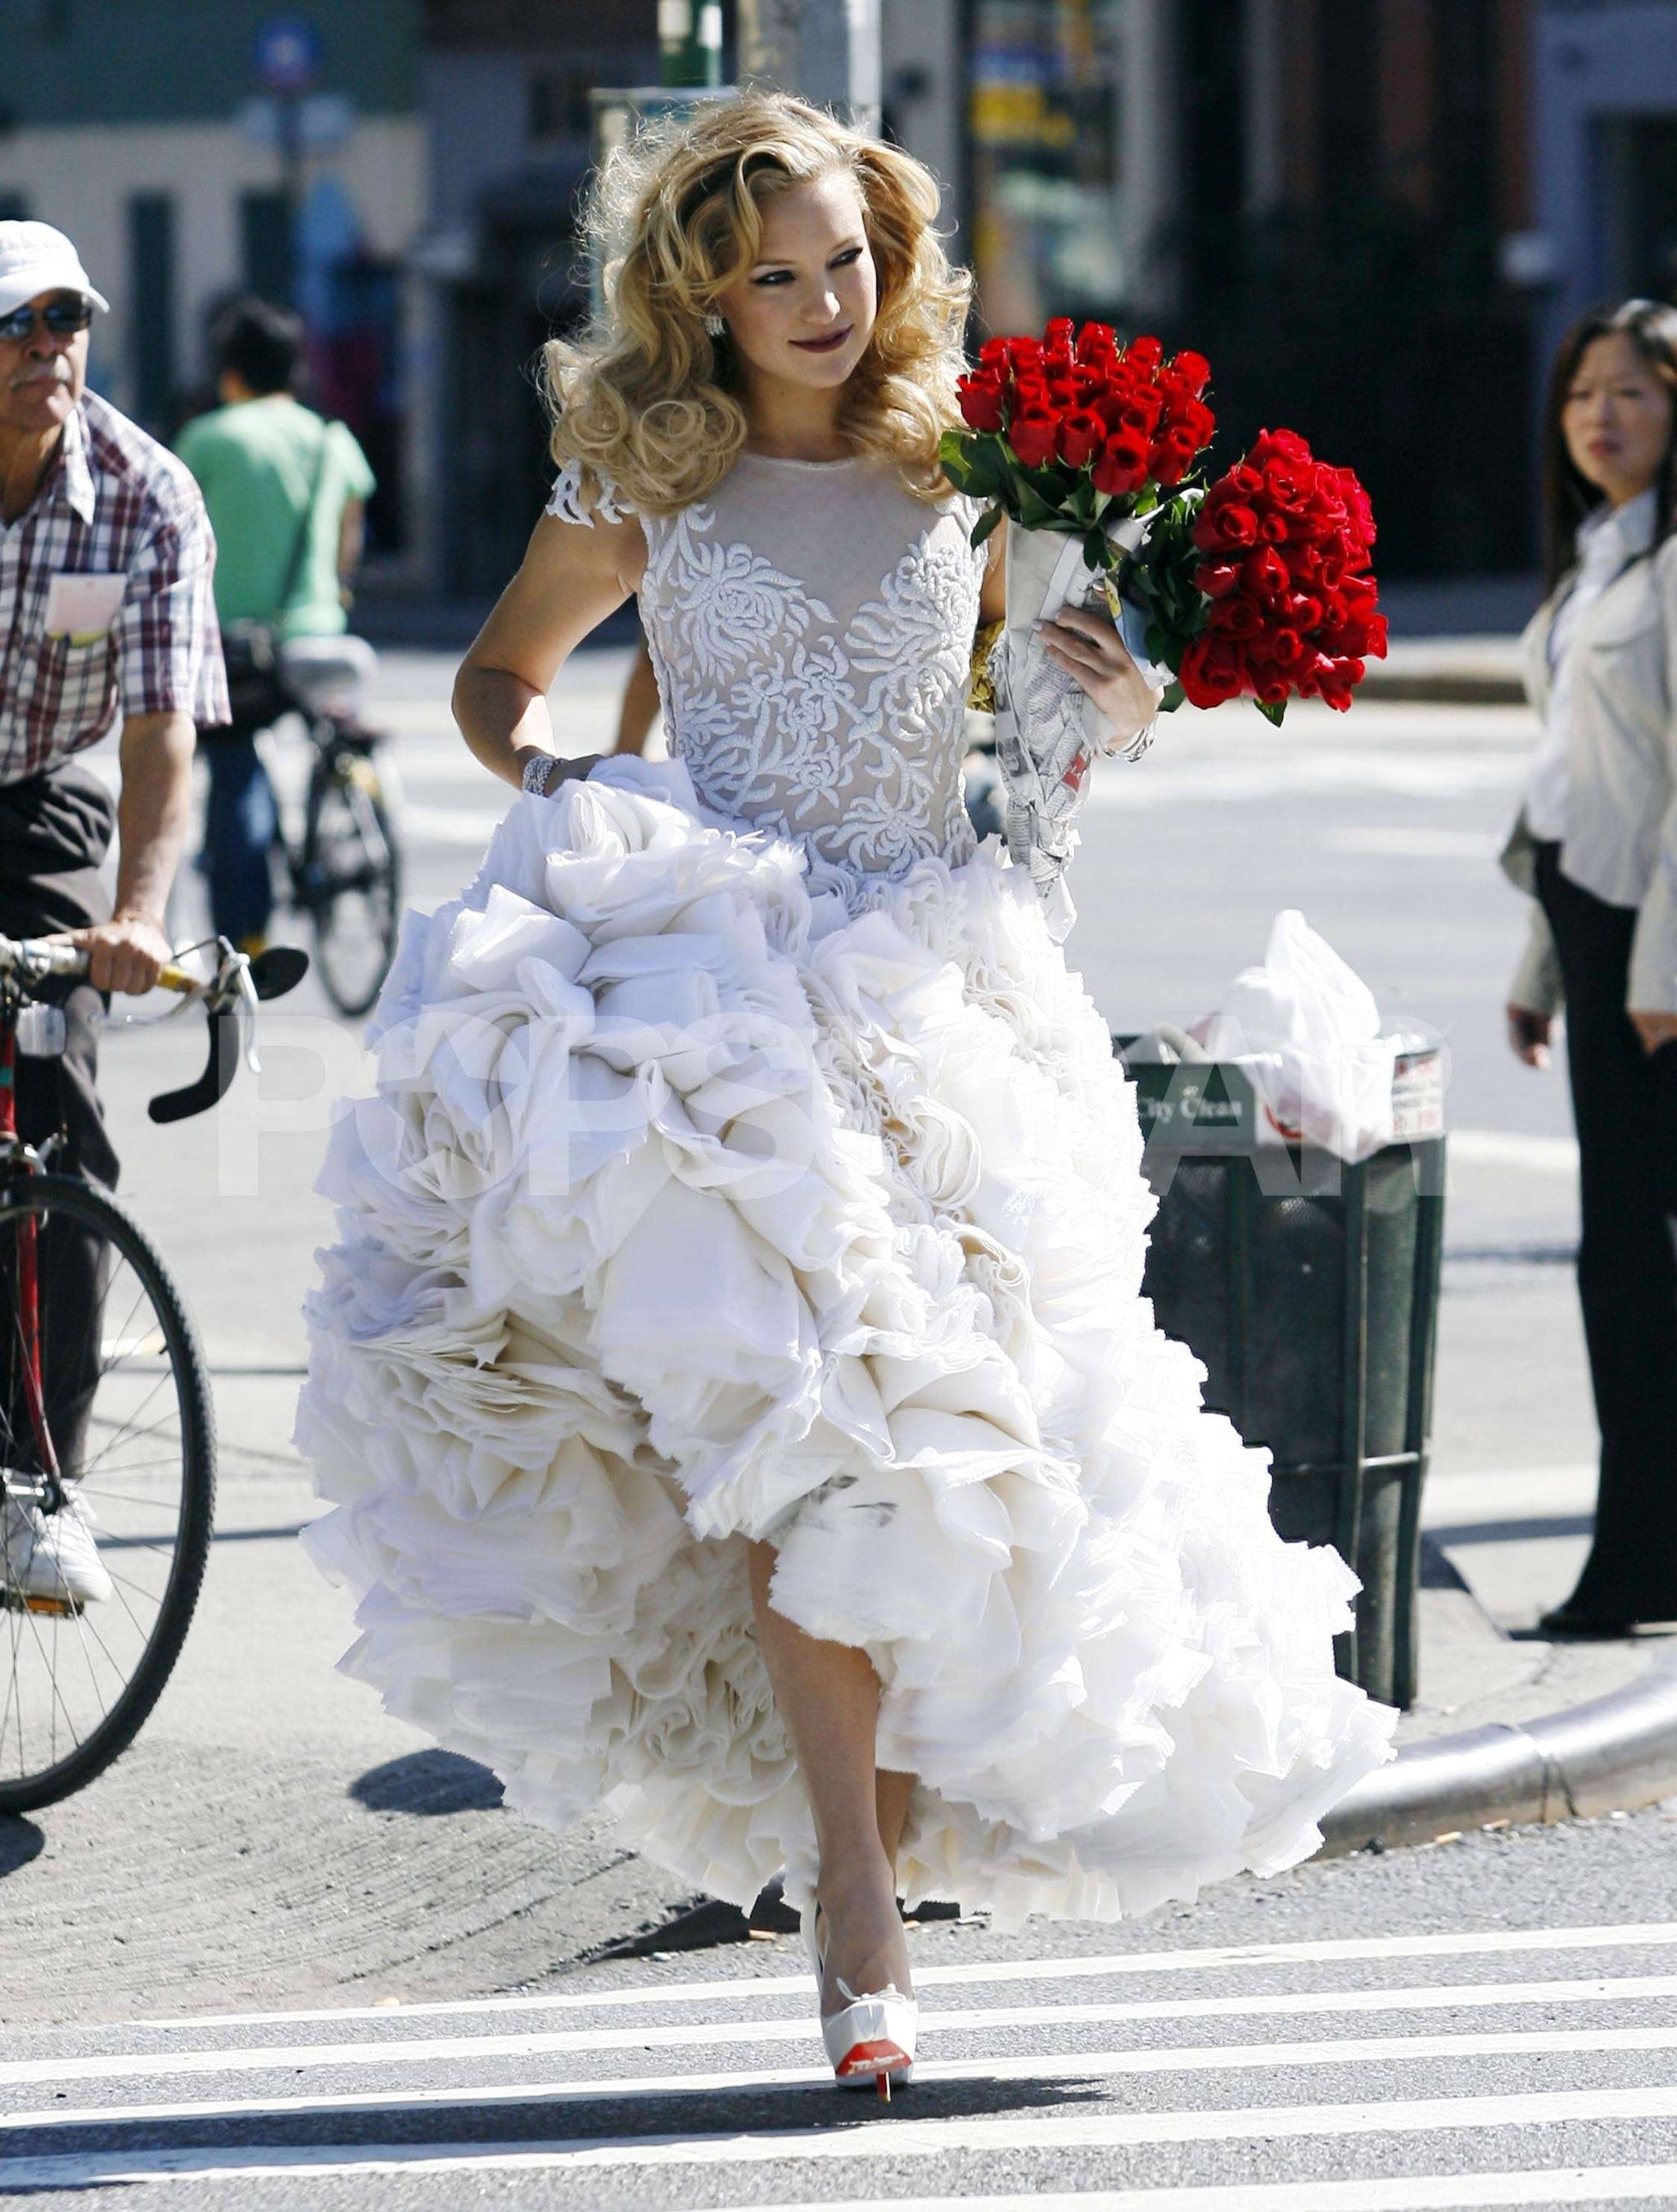 Photos of Kate Hudson in A Wedding Dress For Photo Shoot in NYC ...